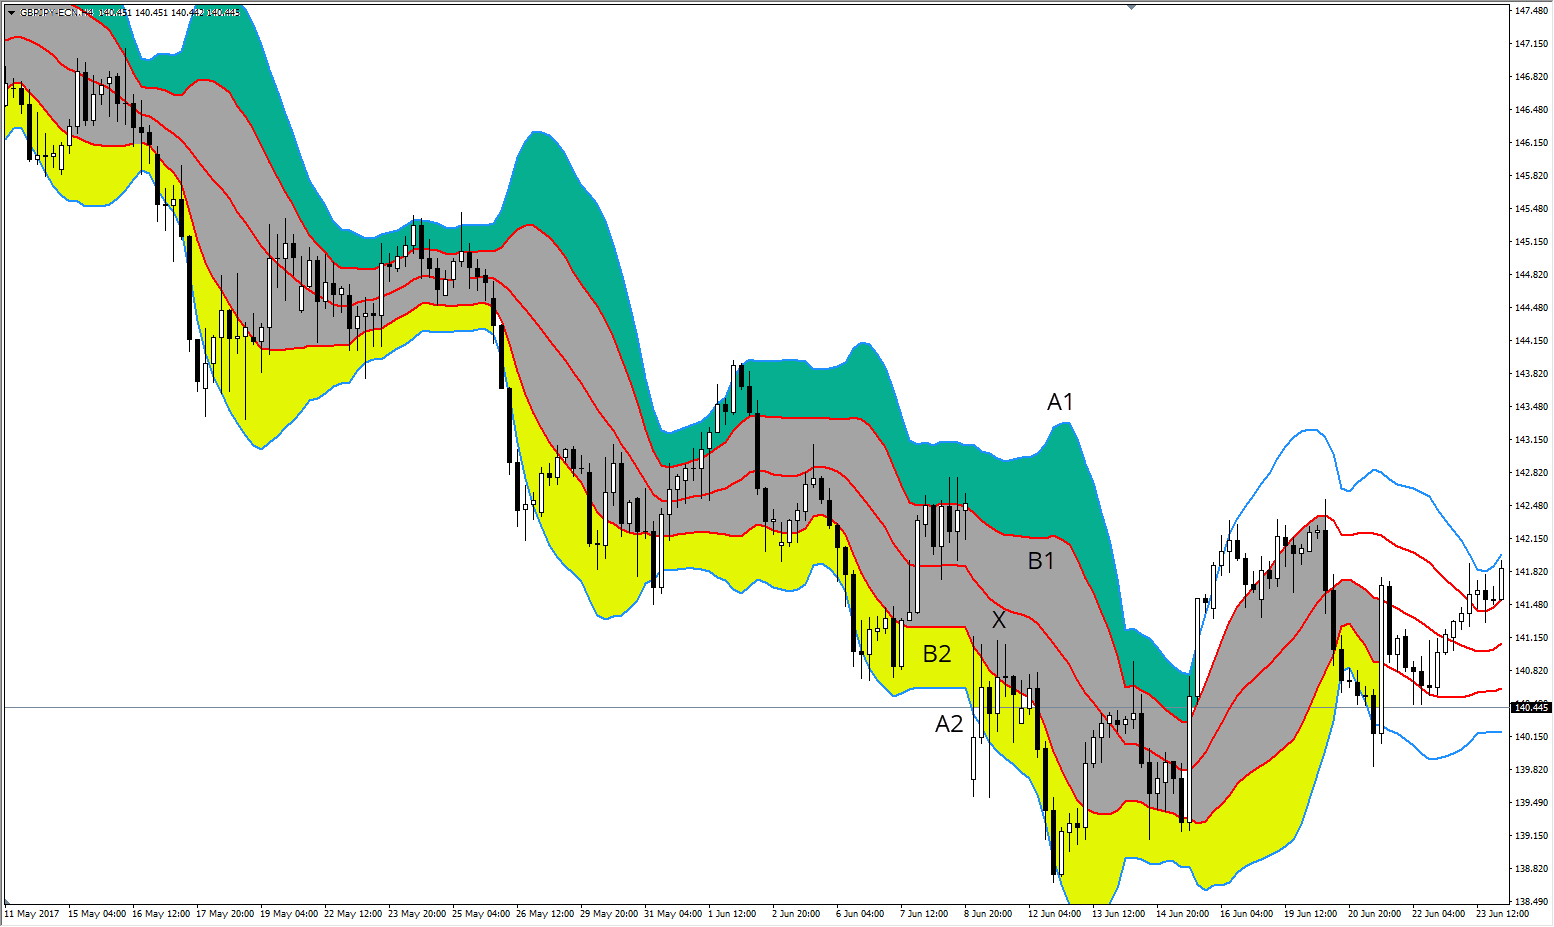 GBP/JPY H4 Chart, Admiral Markets Platform, May 11-Jun 23